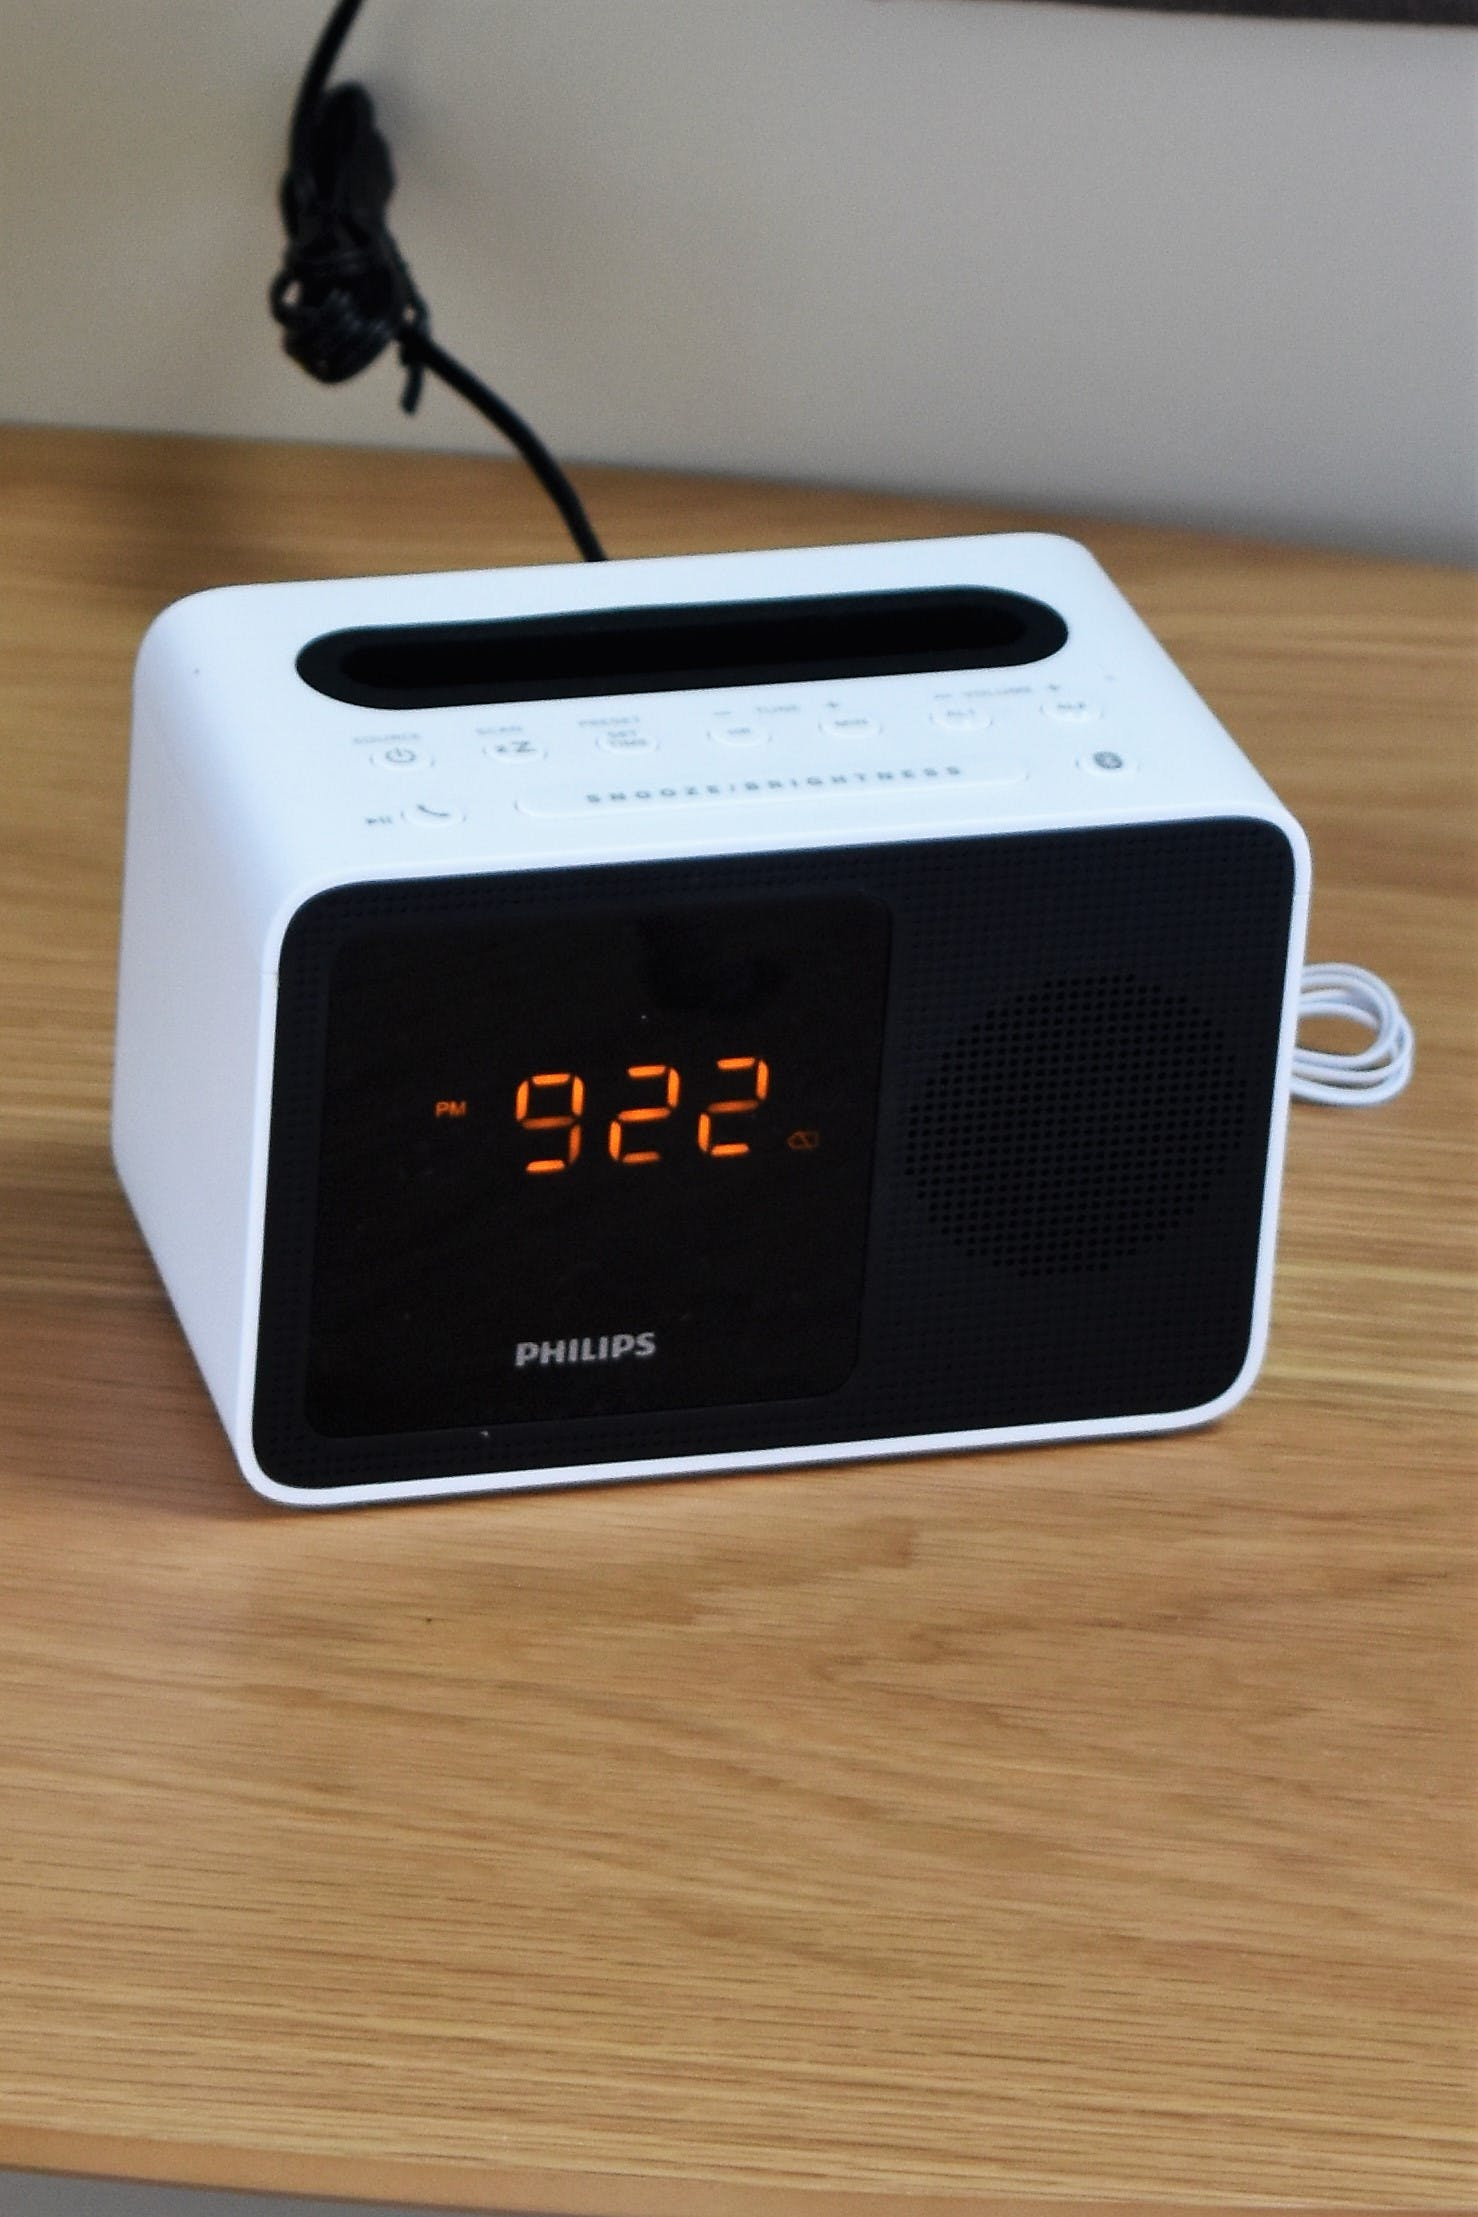 Clock radio with blue tooth speaker to play your favourite songs. USB charger attached to clock radio.